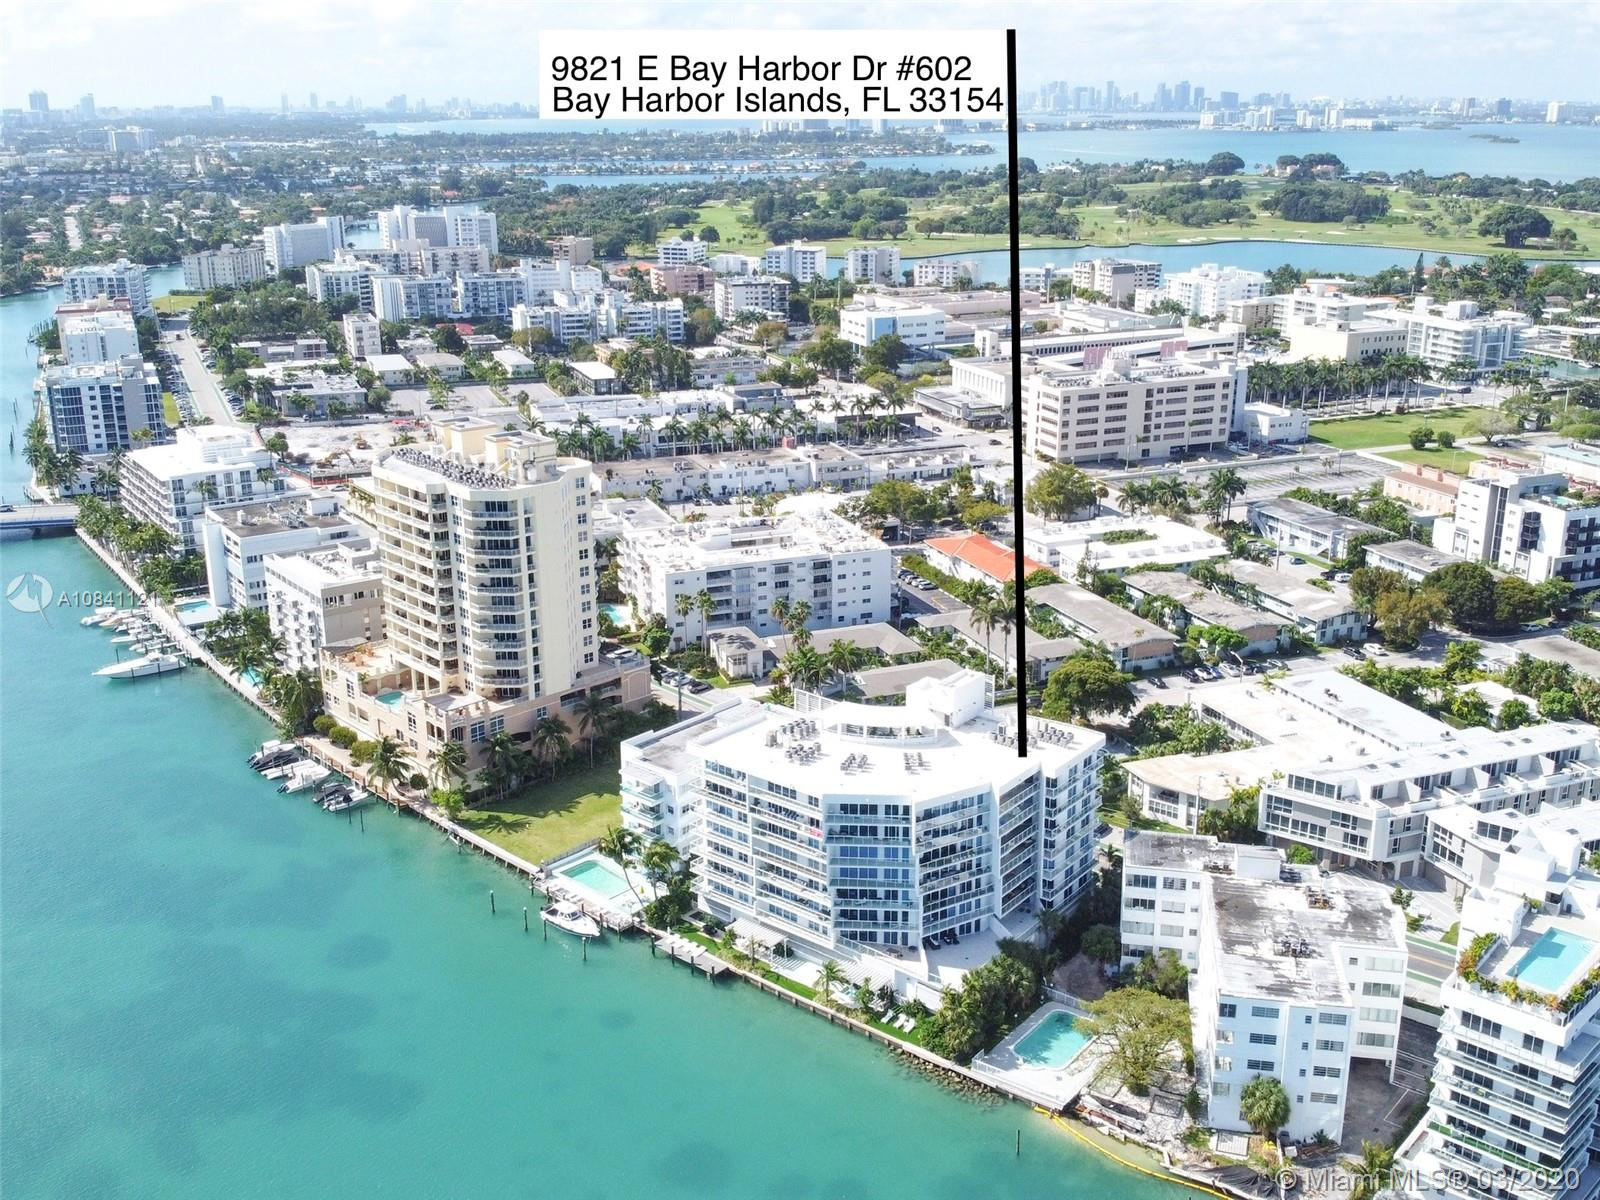 Luxury boutique building on the intracoastal in sought after Bay Harbor Islands. The interior is beautifully furnished in a clean contemporary style, relaxed with amazing views of the intracoastal waterway from a wide curving balcony, floor to celling windows and sliding doors, kitchen and bathrooms fitted with European cabinetry and quartz countertops, marble floors in the bathrooms. The building boutique style offers on the third floor deck zero edge sunset pool with boomerang shape infinity Hot-Tub and cascading waterfall, fitness facilities, steam room and showers, also Bay Front water deck, Hot-Tub and Summer Kitchen, water sports such as paddle boarding and kayaking. Unit come with Storage